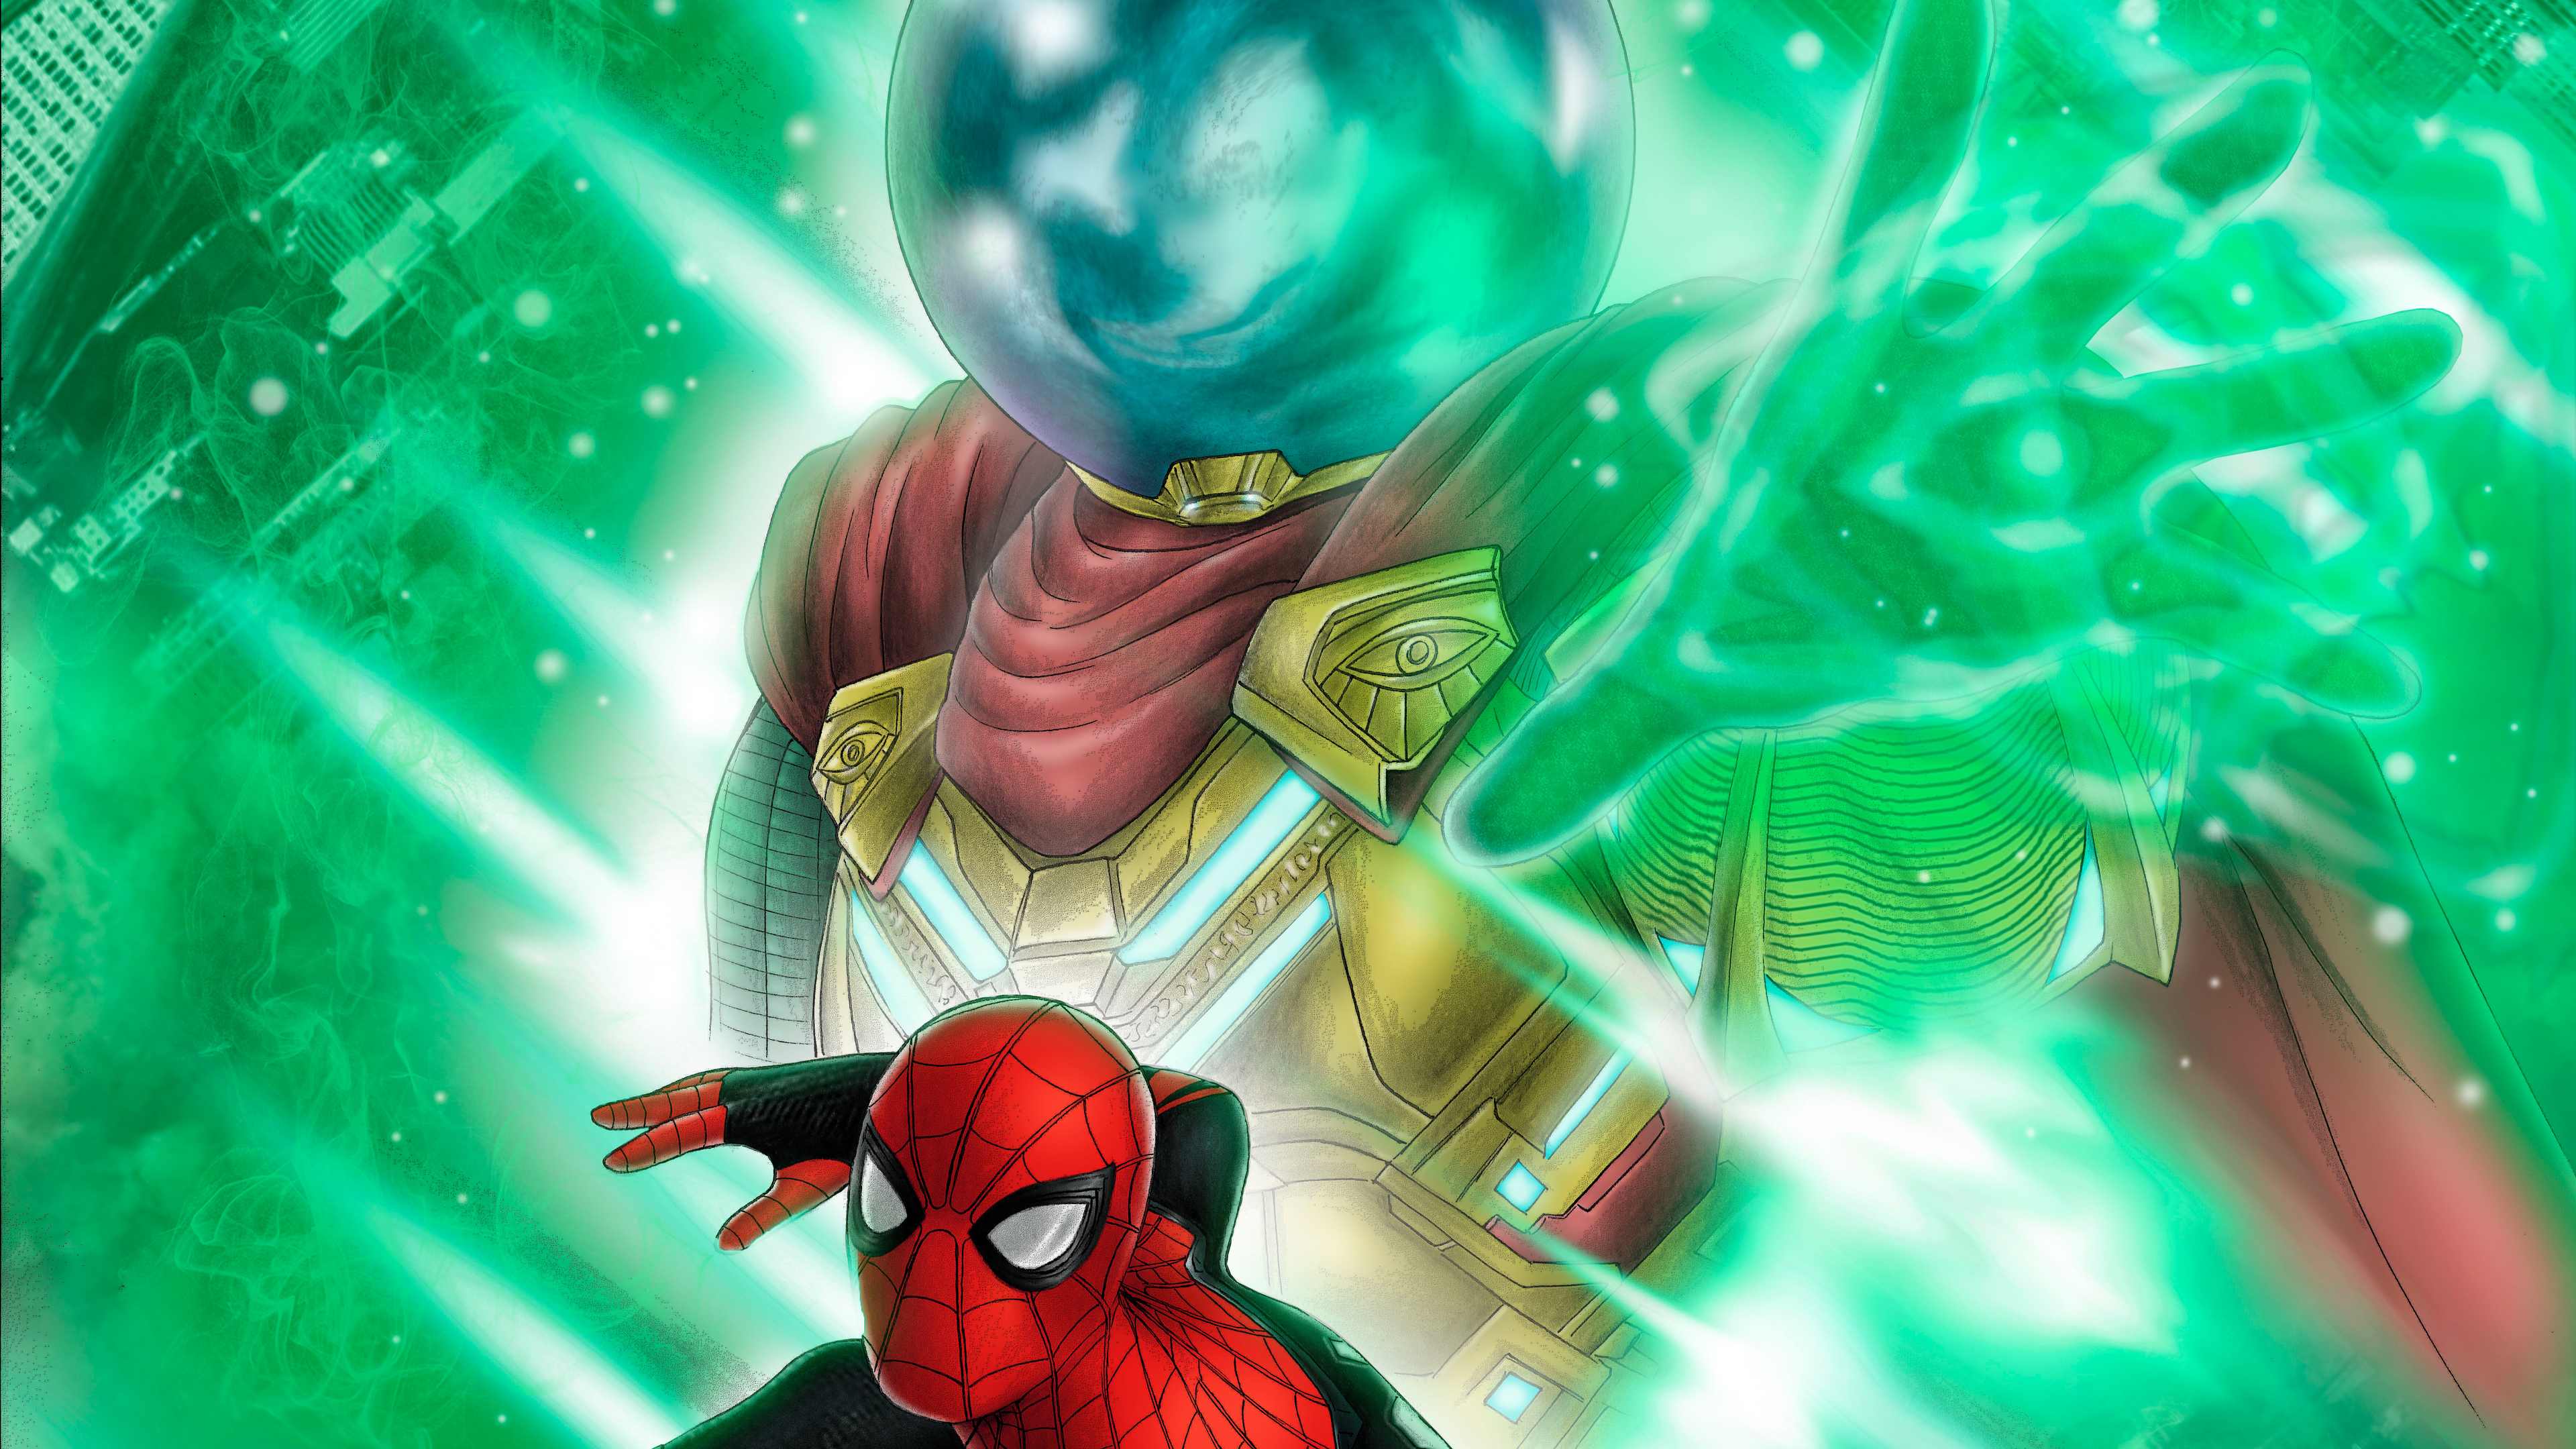 spiderman vs mysterio 2019 1565053435 - Spiderman Vs Mysterio 2019 - superheroes wallpapers, spiderman wallpapers, mysterio wallpapers, hd-wallpapers, 8k wallpapers, 5k wallpapers, 4k-wallpapers